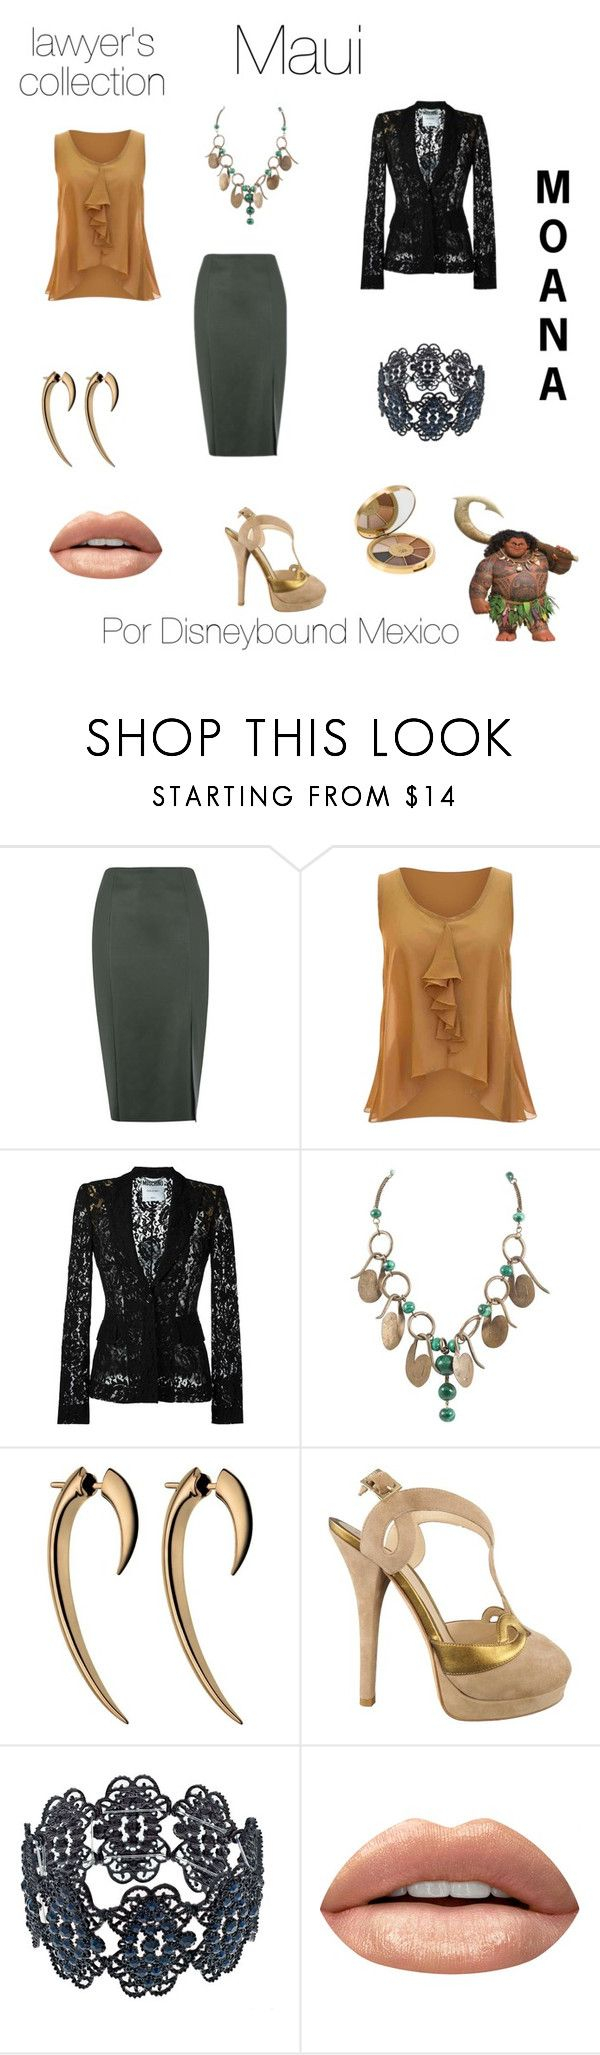 """Maui"" by disneybound-mexico ❤ liked on Polyvore featuring Warehouse, jon & anna, Moschino, Fendi, Huda Beauty, tarte, disney, moana, disneyboundmexico and lawyerscollection"